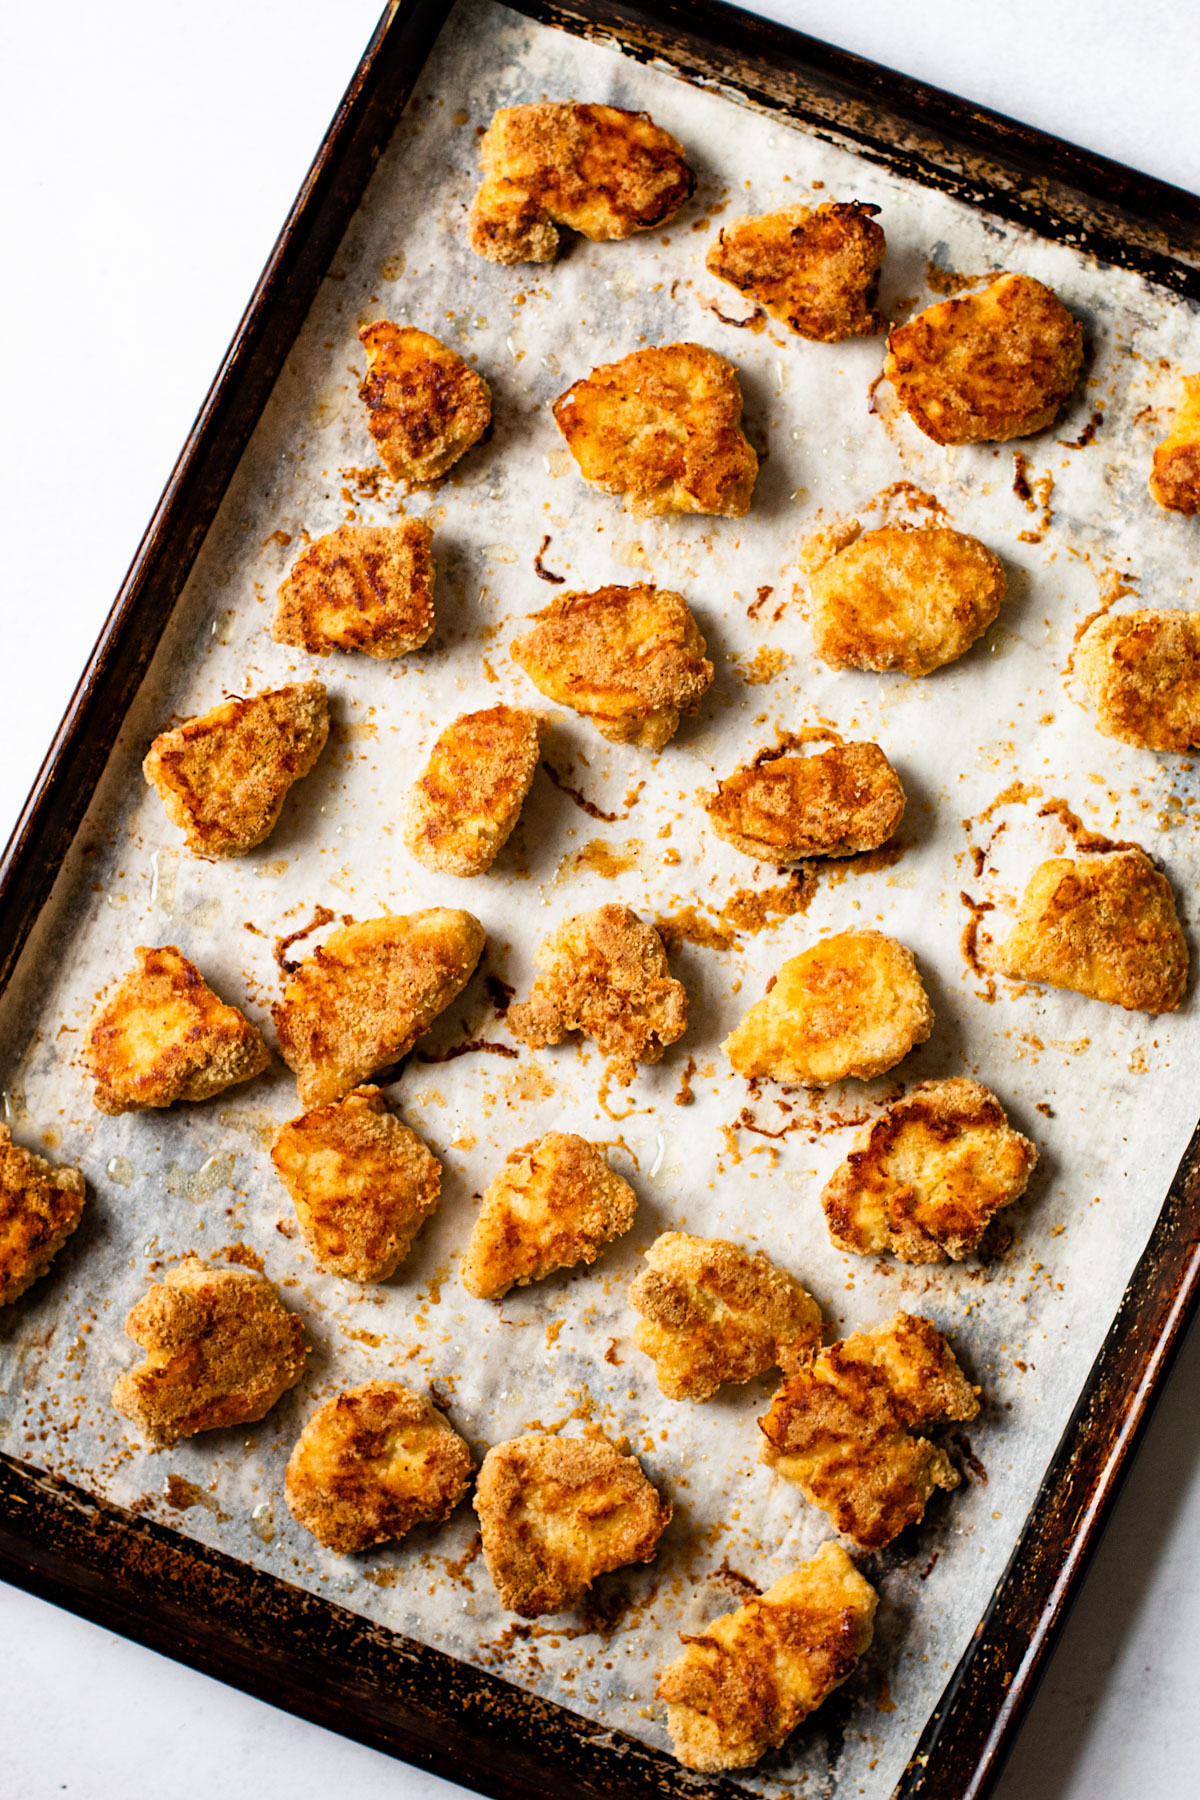 Gluten-free chicken nuggets that are baked.